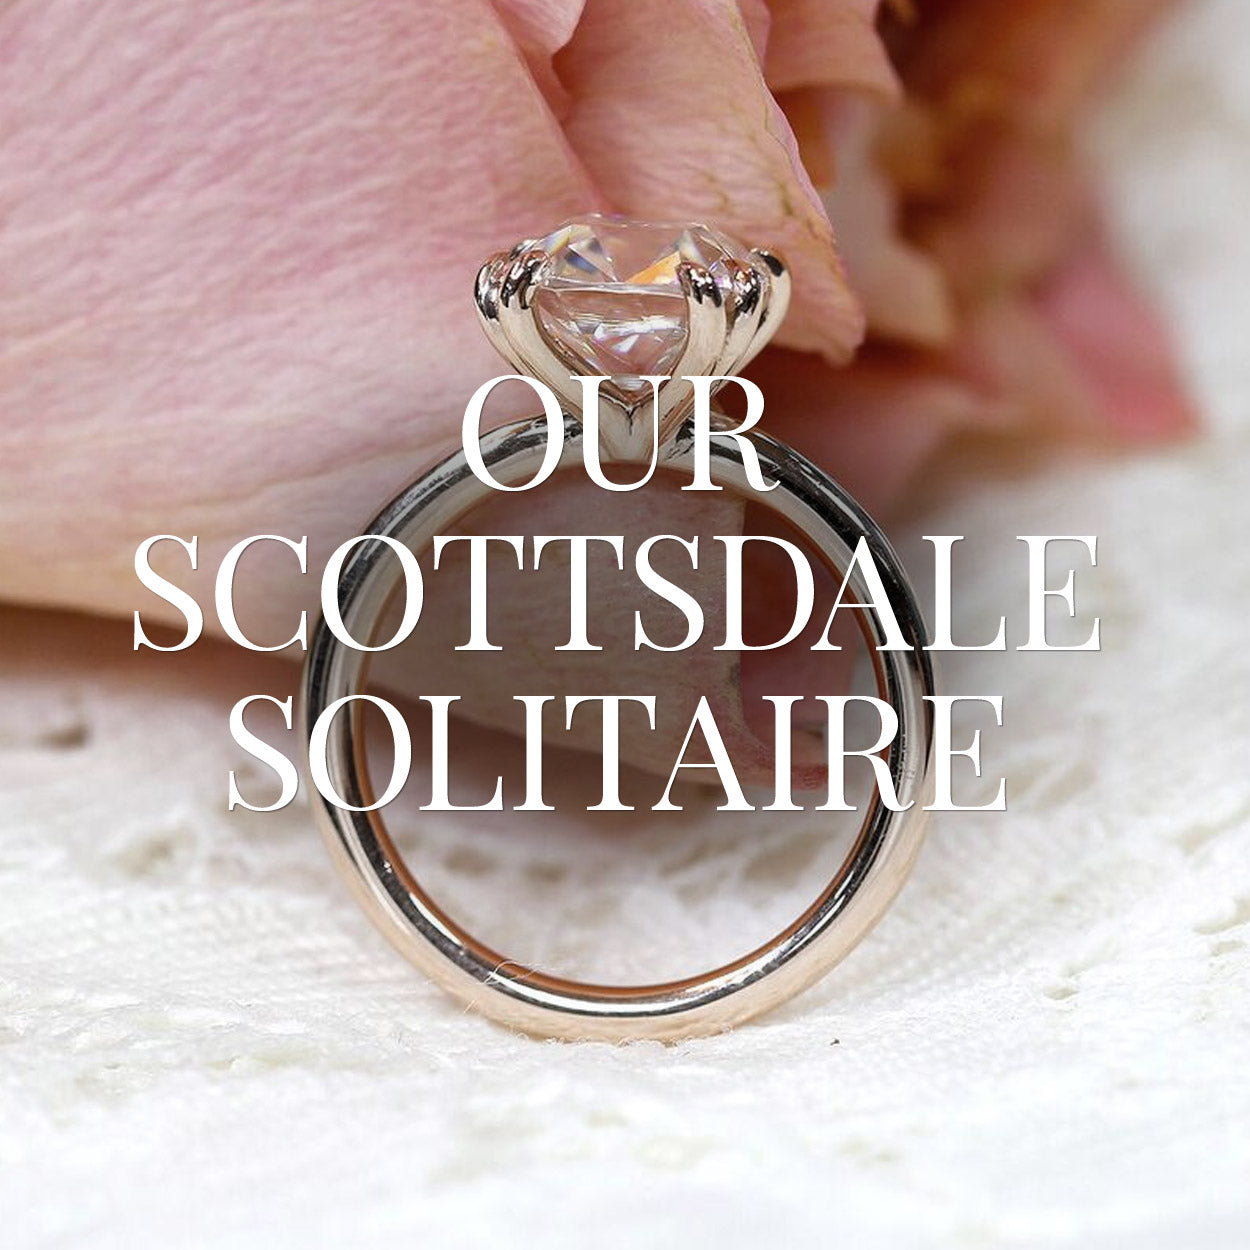 Our Scottsdale Solitaire Engagement Ring